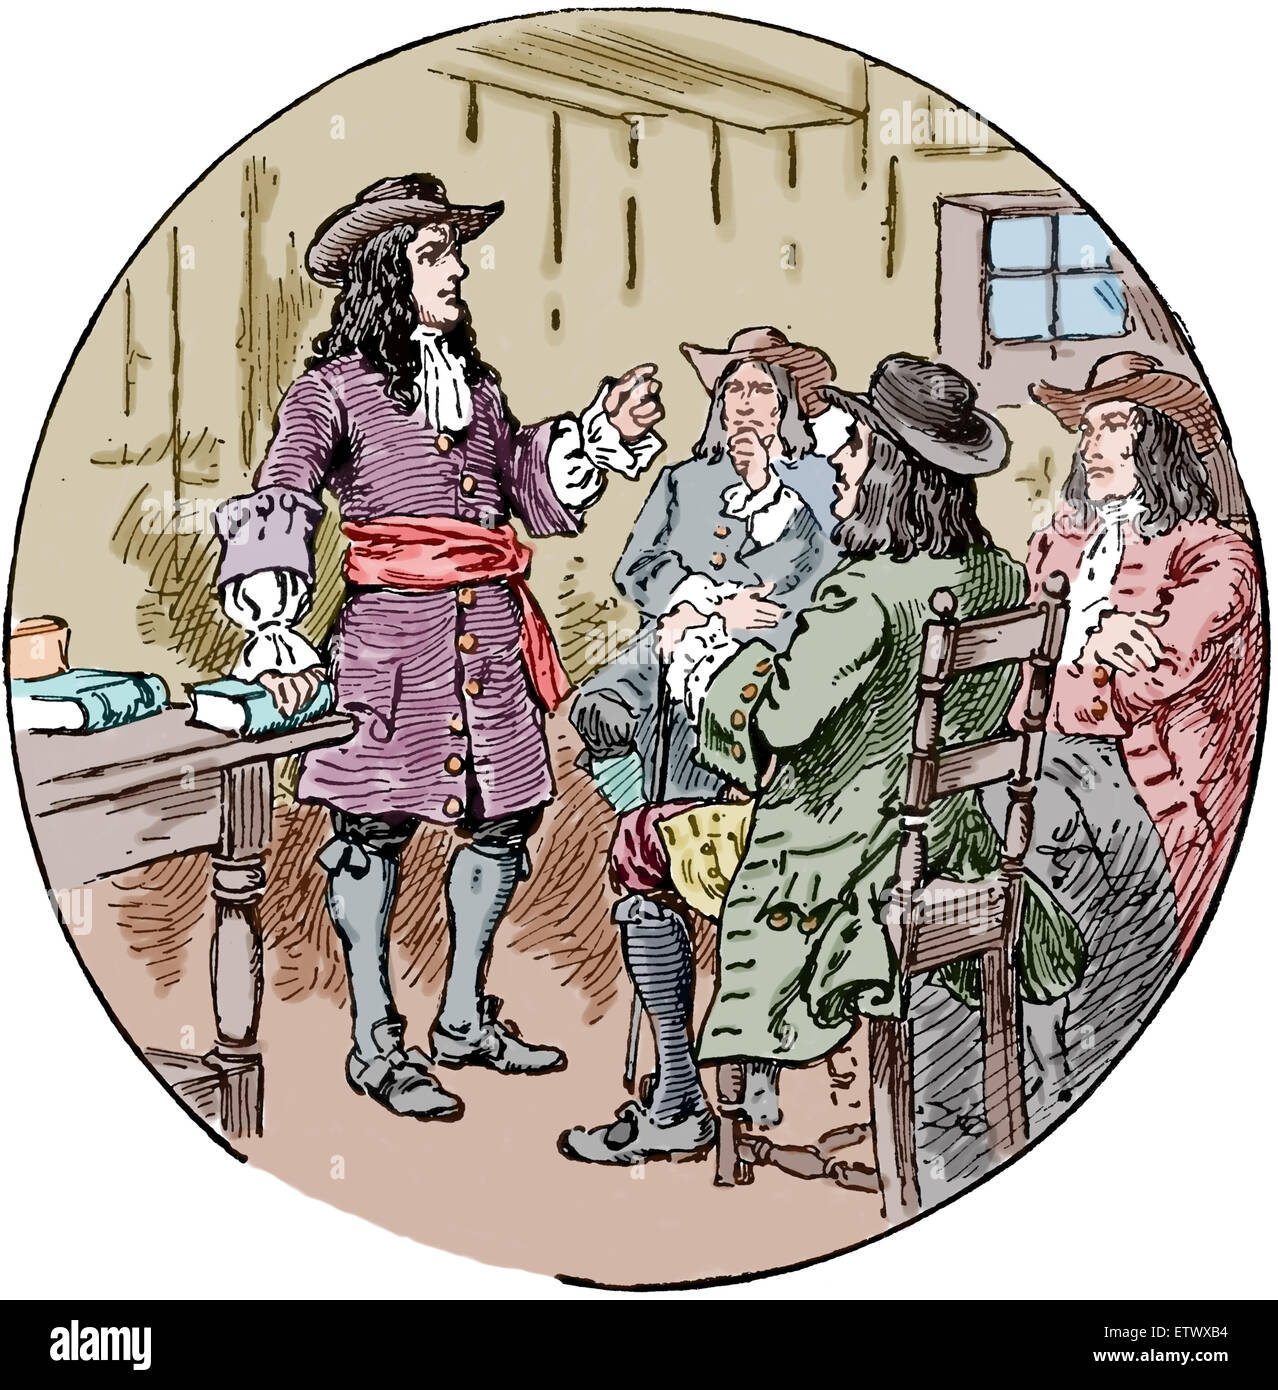 17th century american history This historical list showcases the greatest technology, science, and invention hits of the 17th century does your favorite gadget make the list  american history .